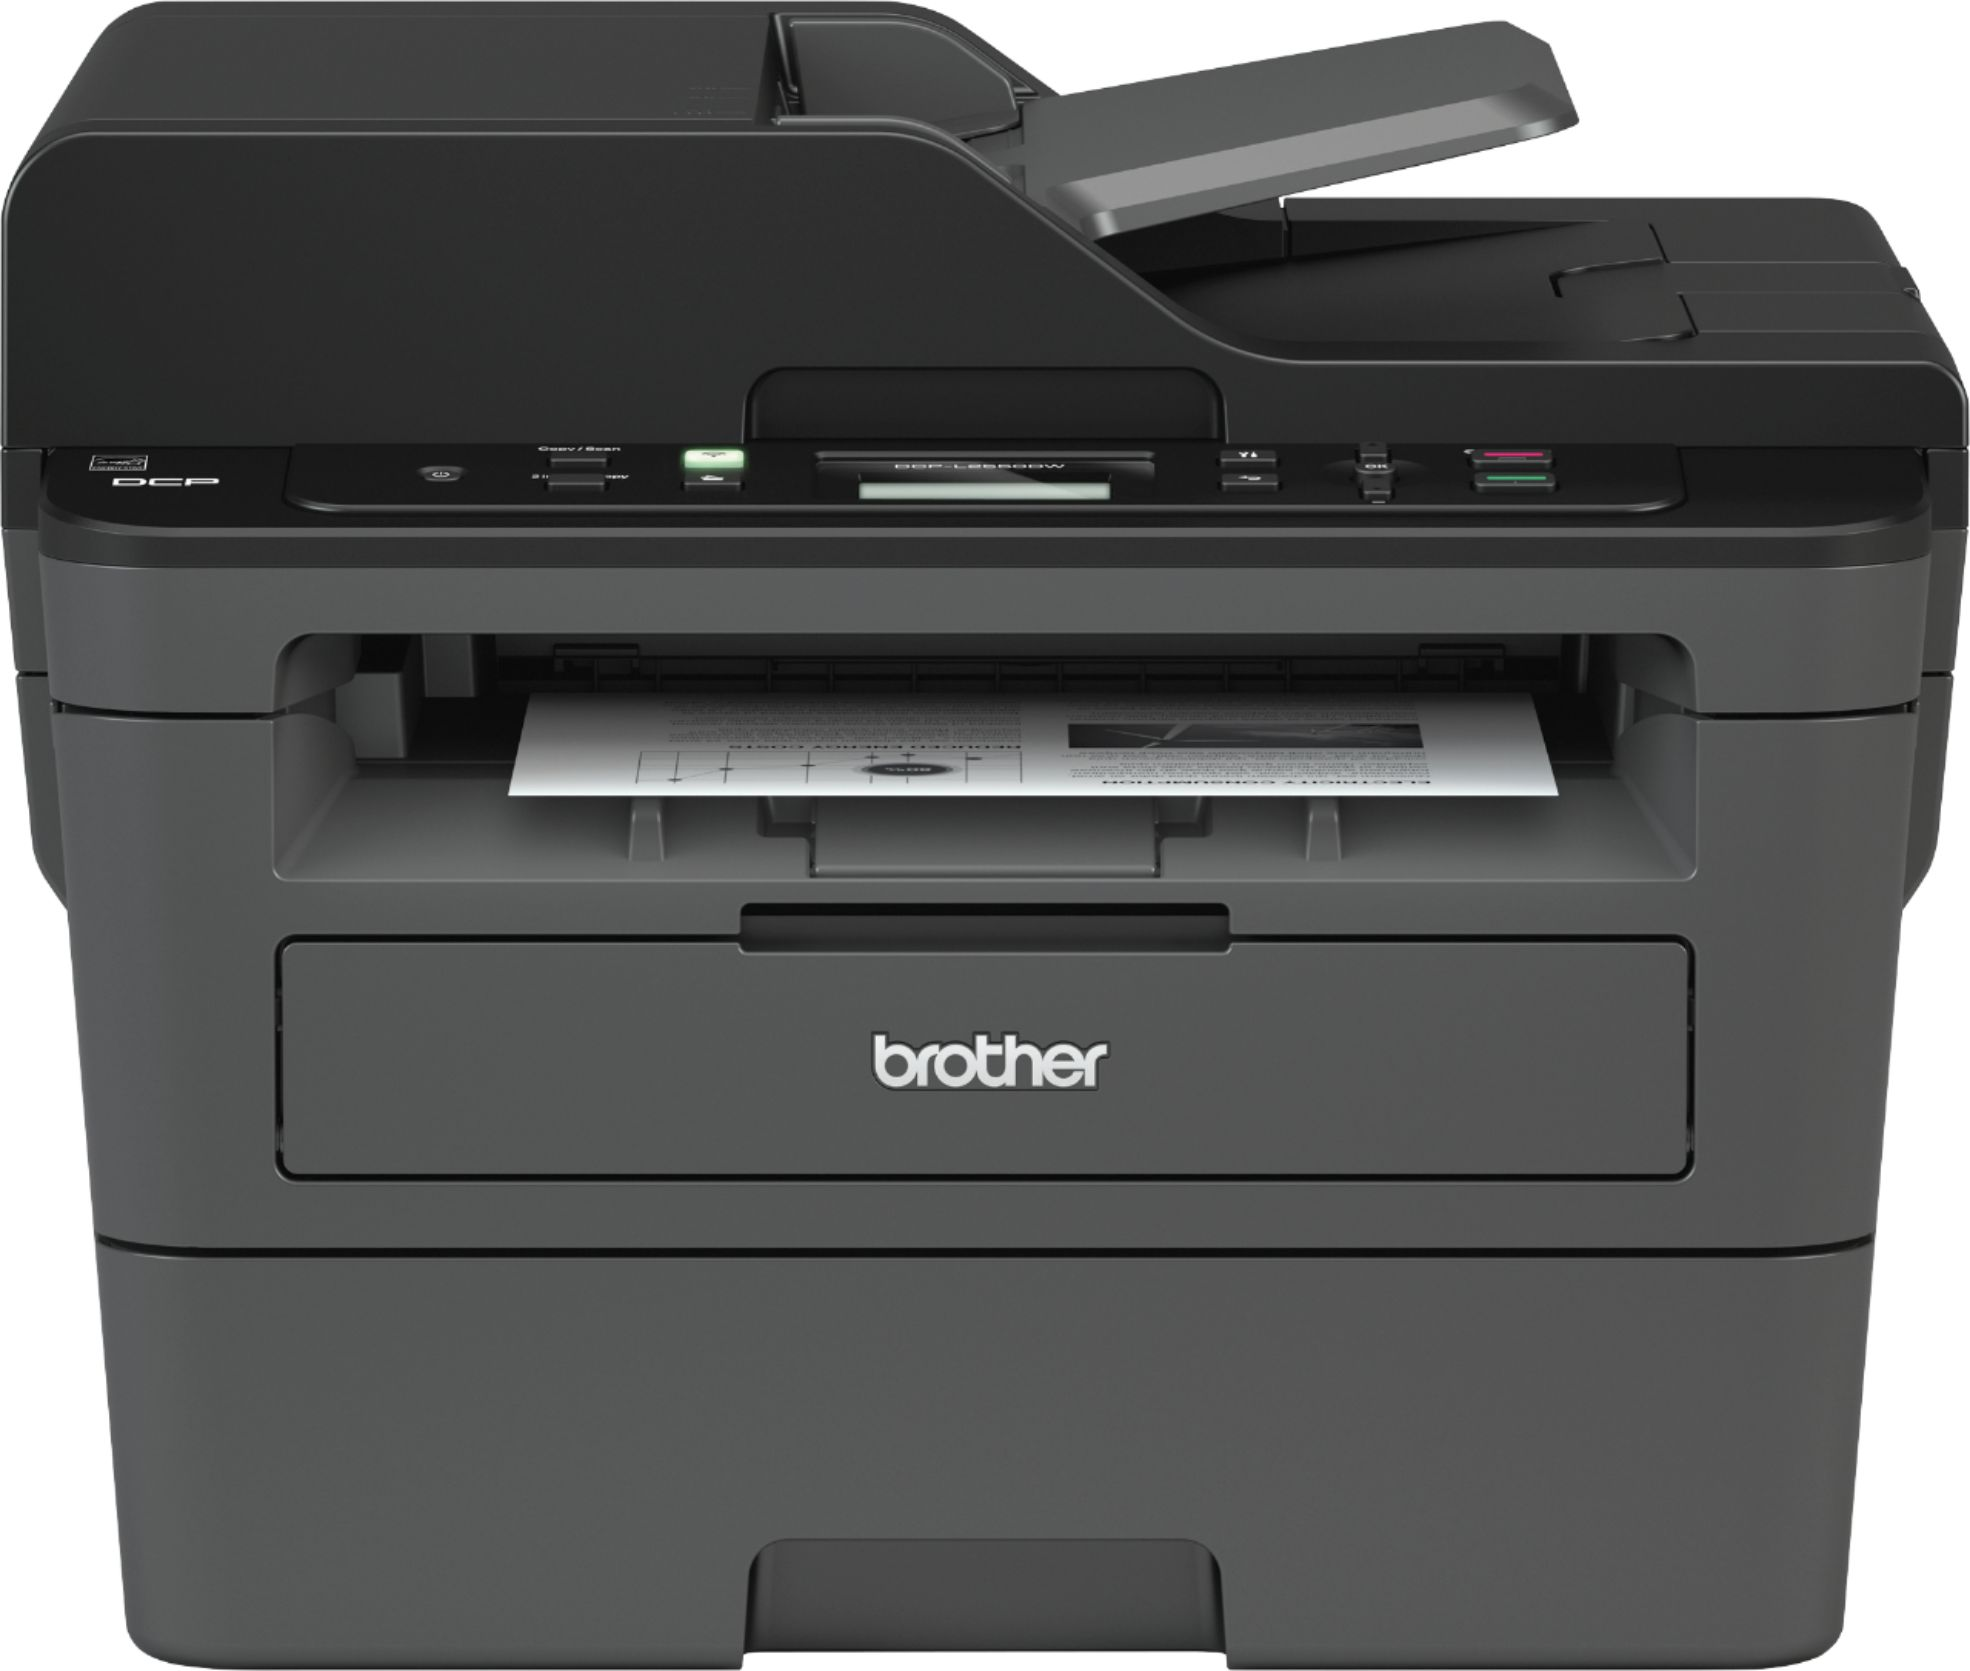 hight resolution of brother dcp l2550dw wireless black and white all in one printer black dcp l2550dw best buy